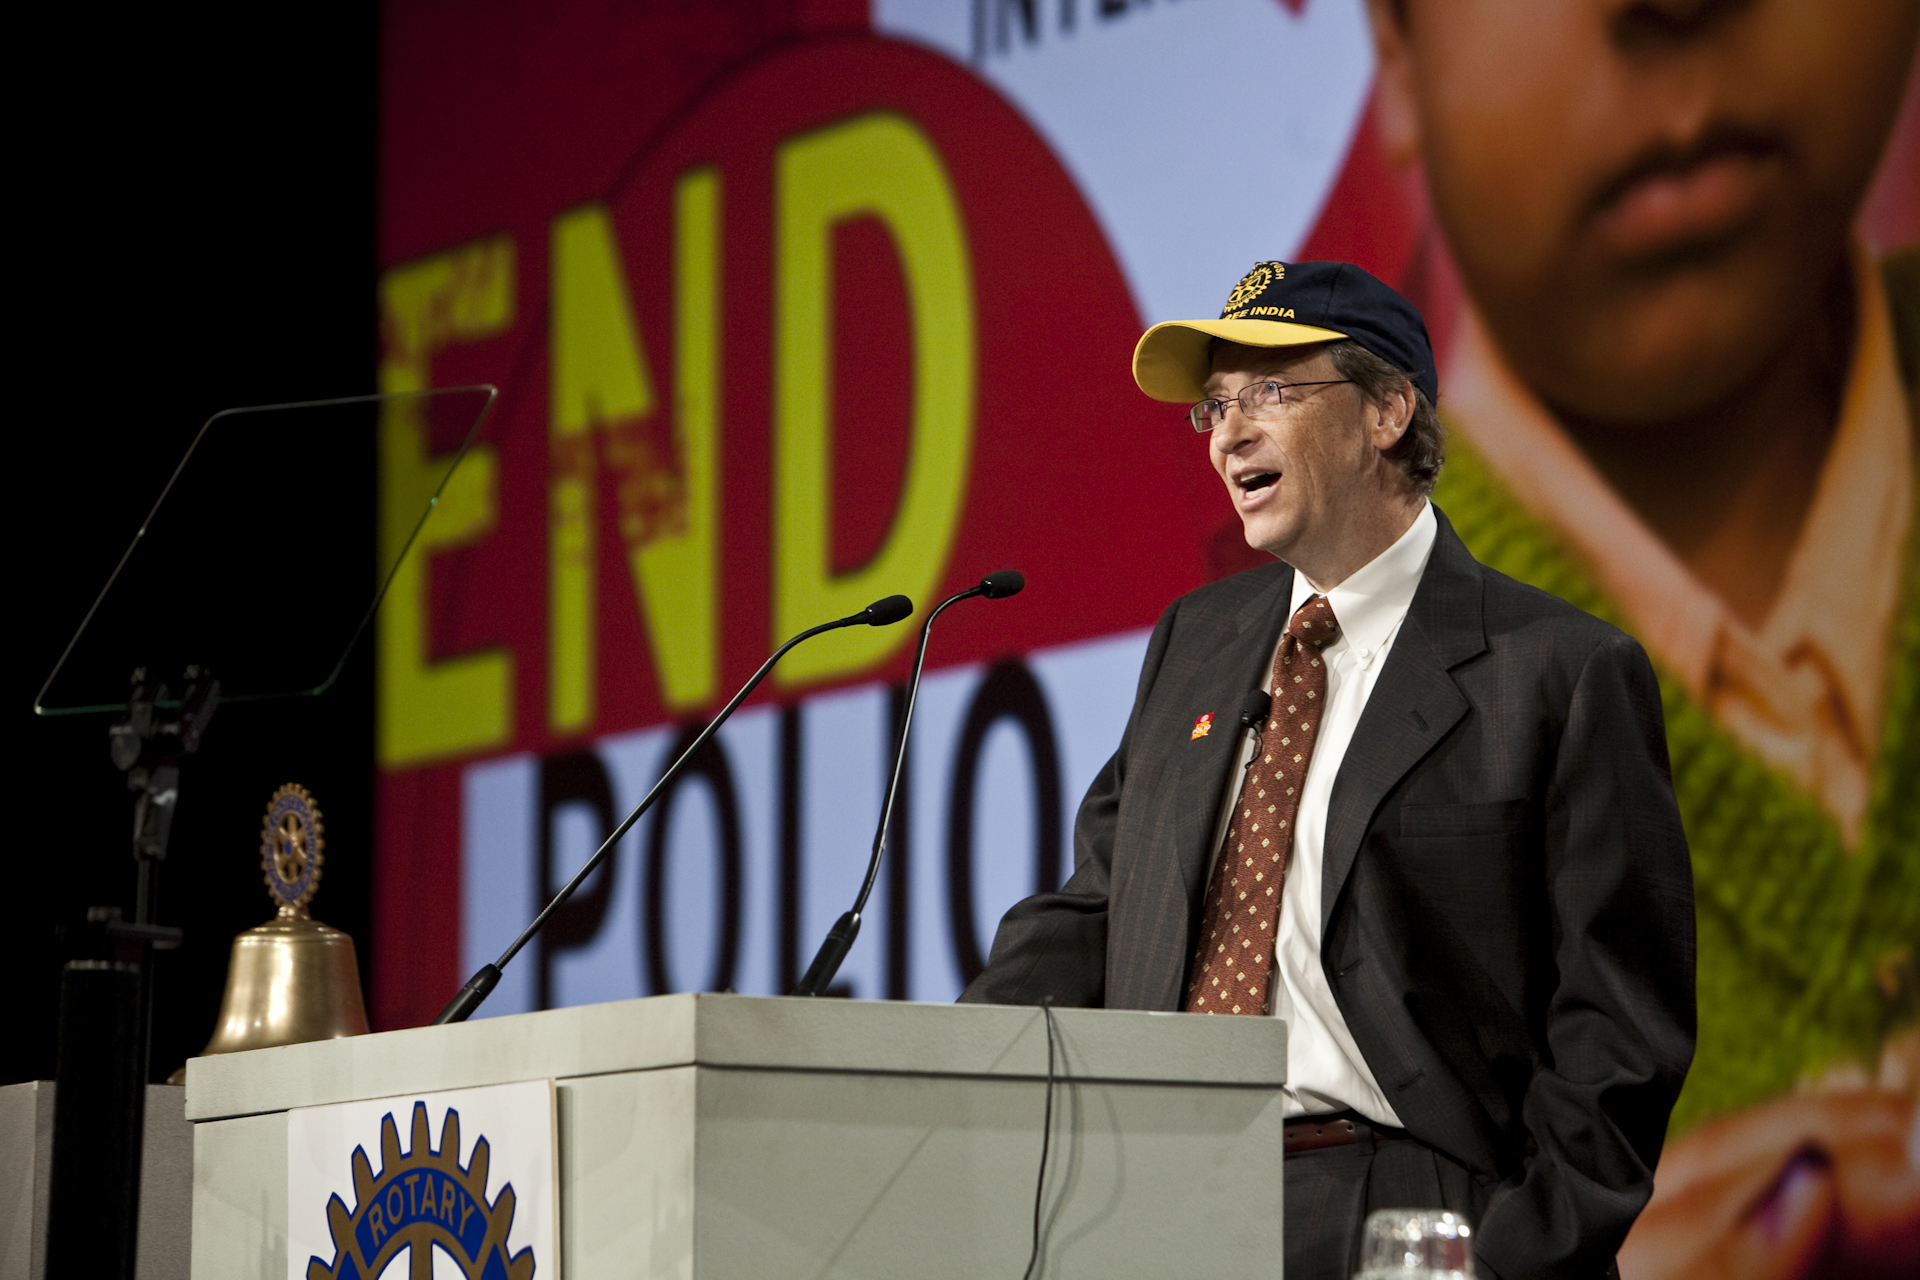 Bill Gates, co-chair of the Bill & Melinda Gates Foundation, issued the $200 challenge during a Rotary conference in January 2009.